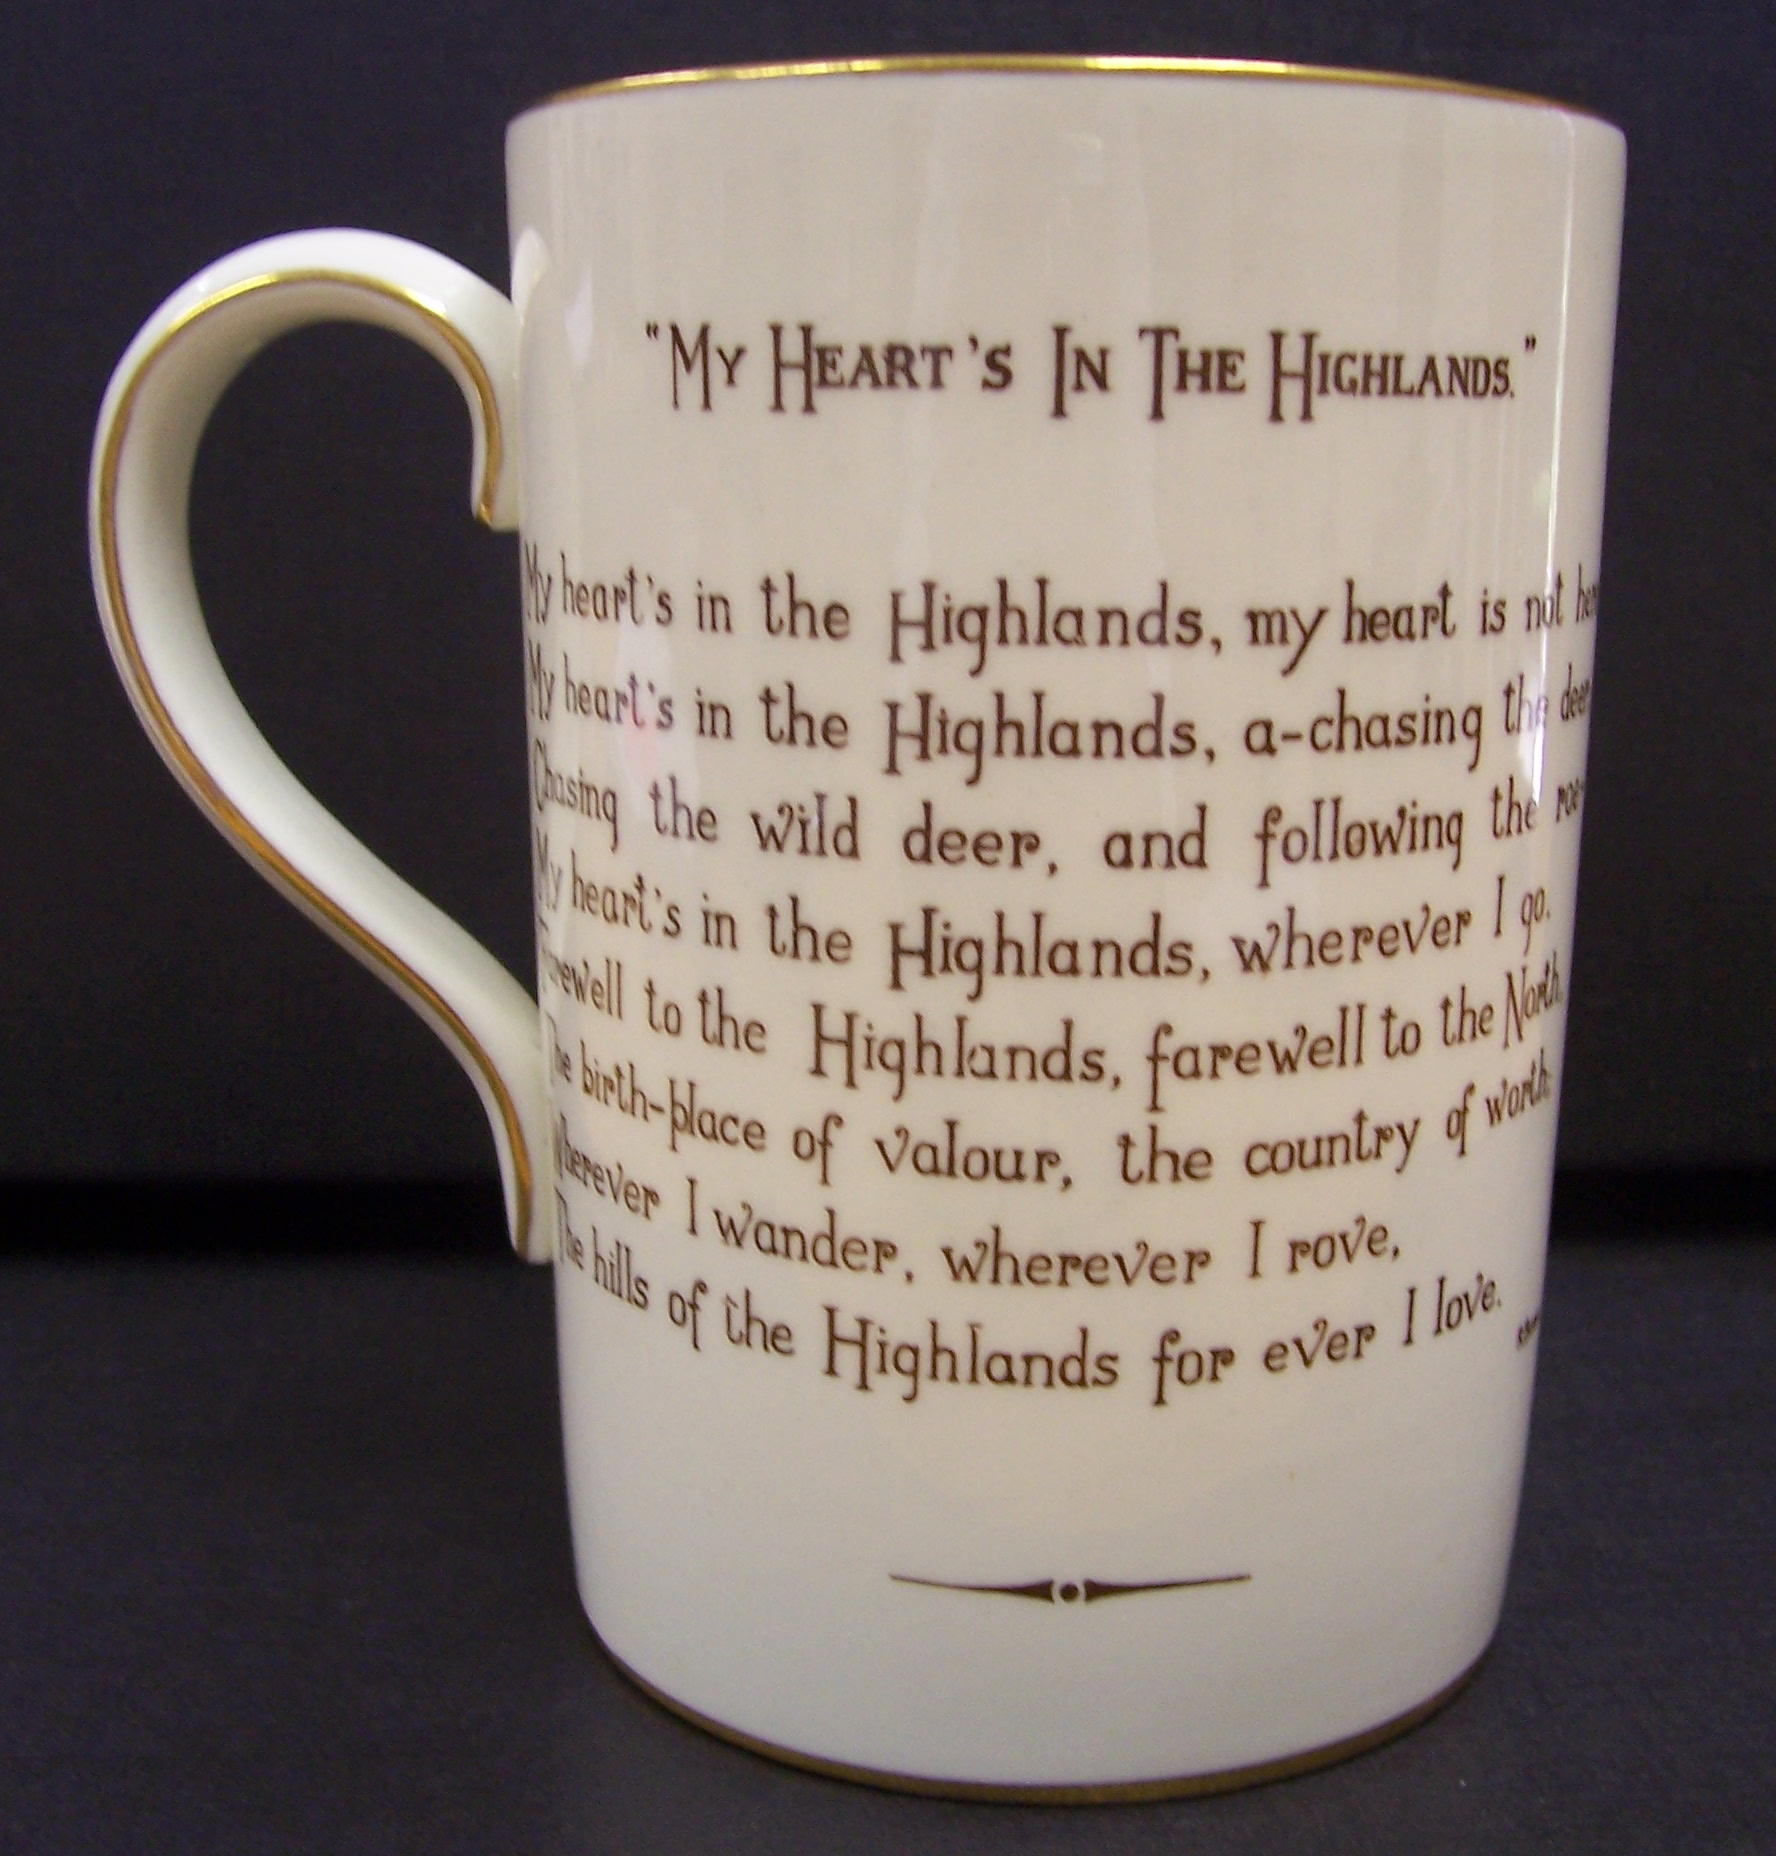 royal-crown-derby-tankard-1928-shape-my-heart's-in-the-highlands-reverse